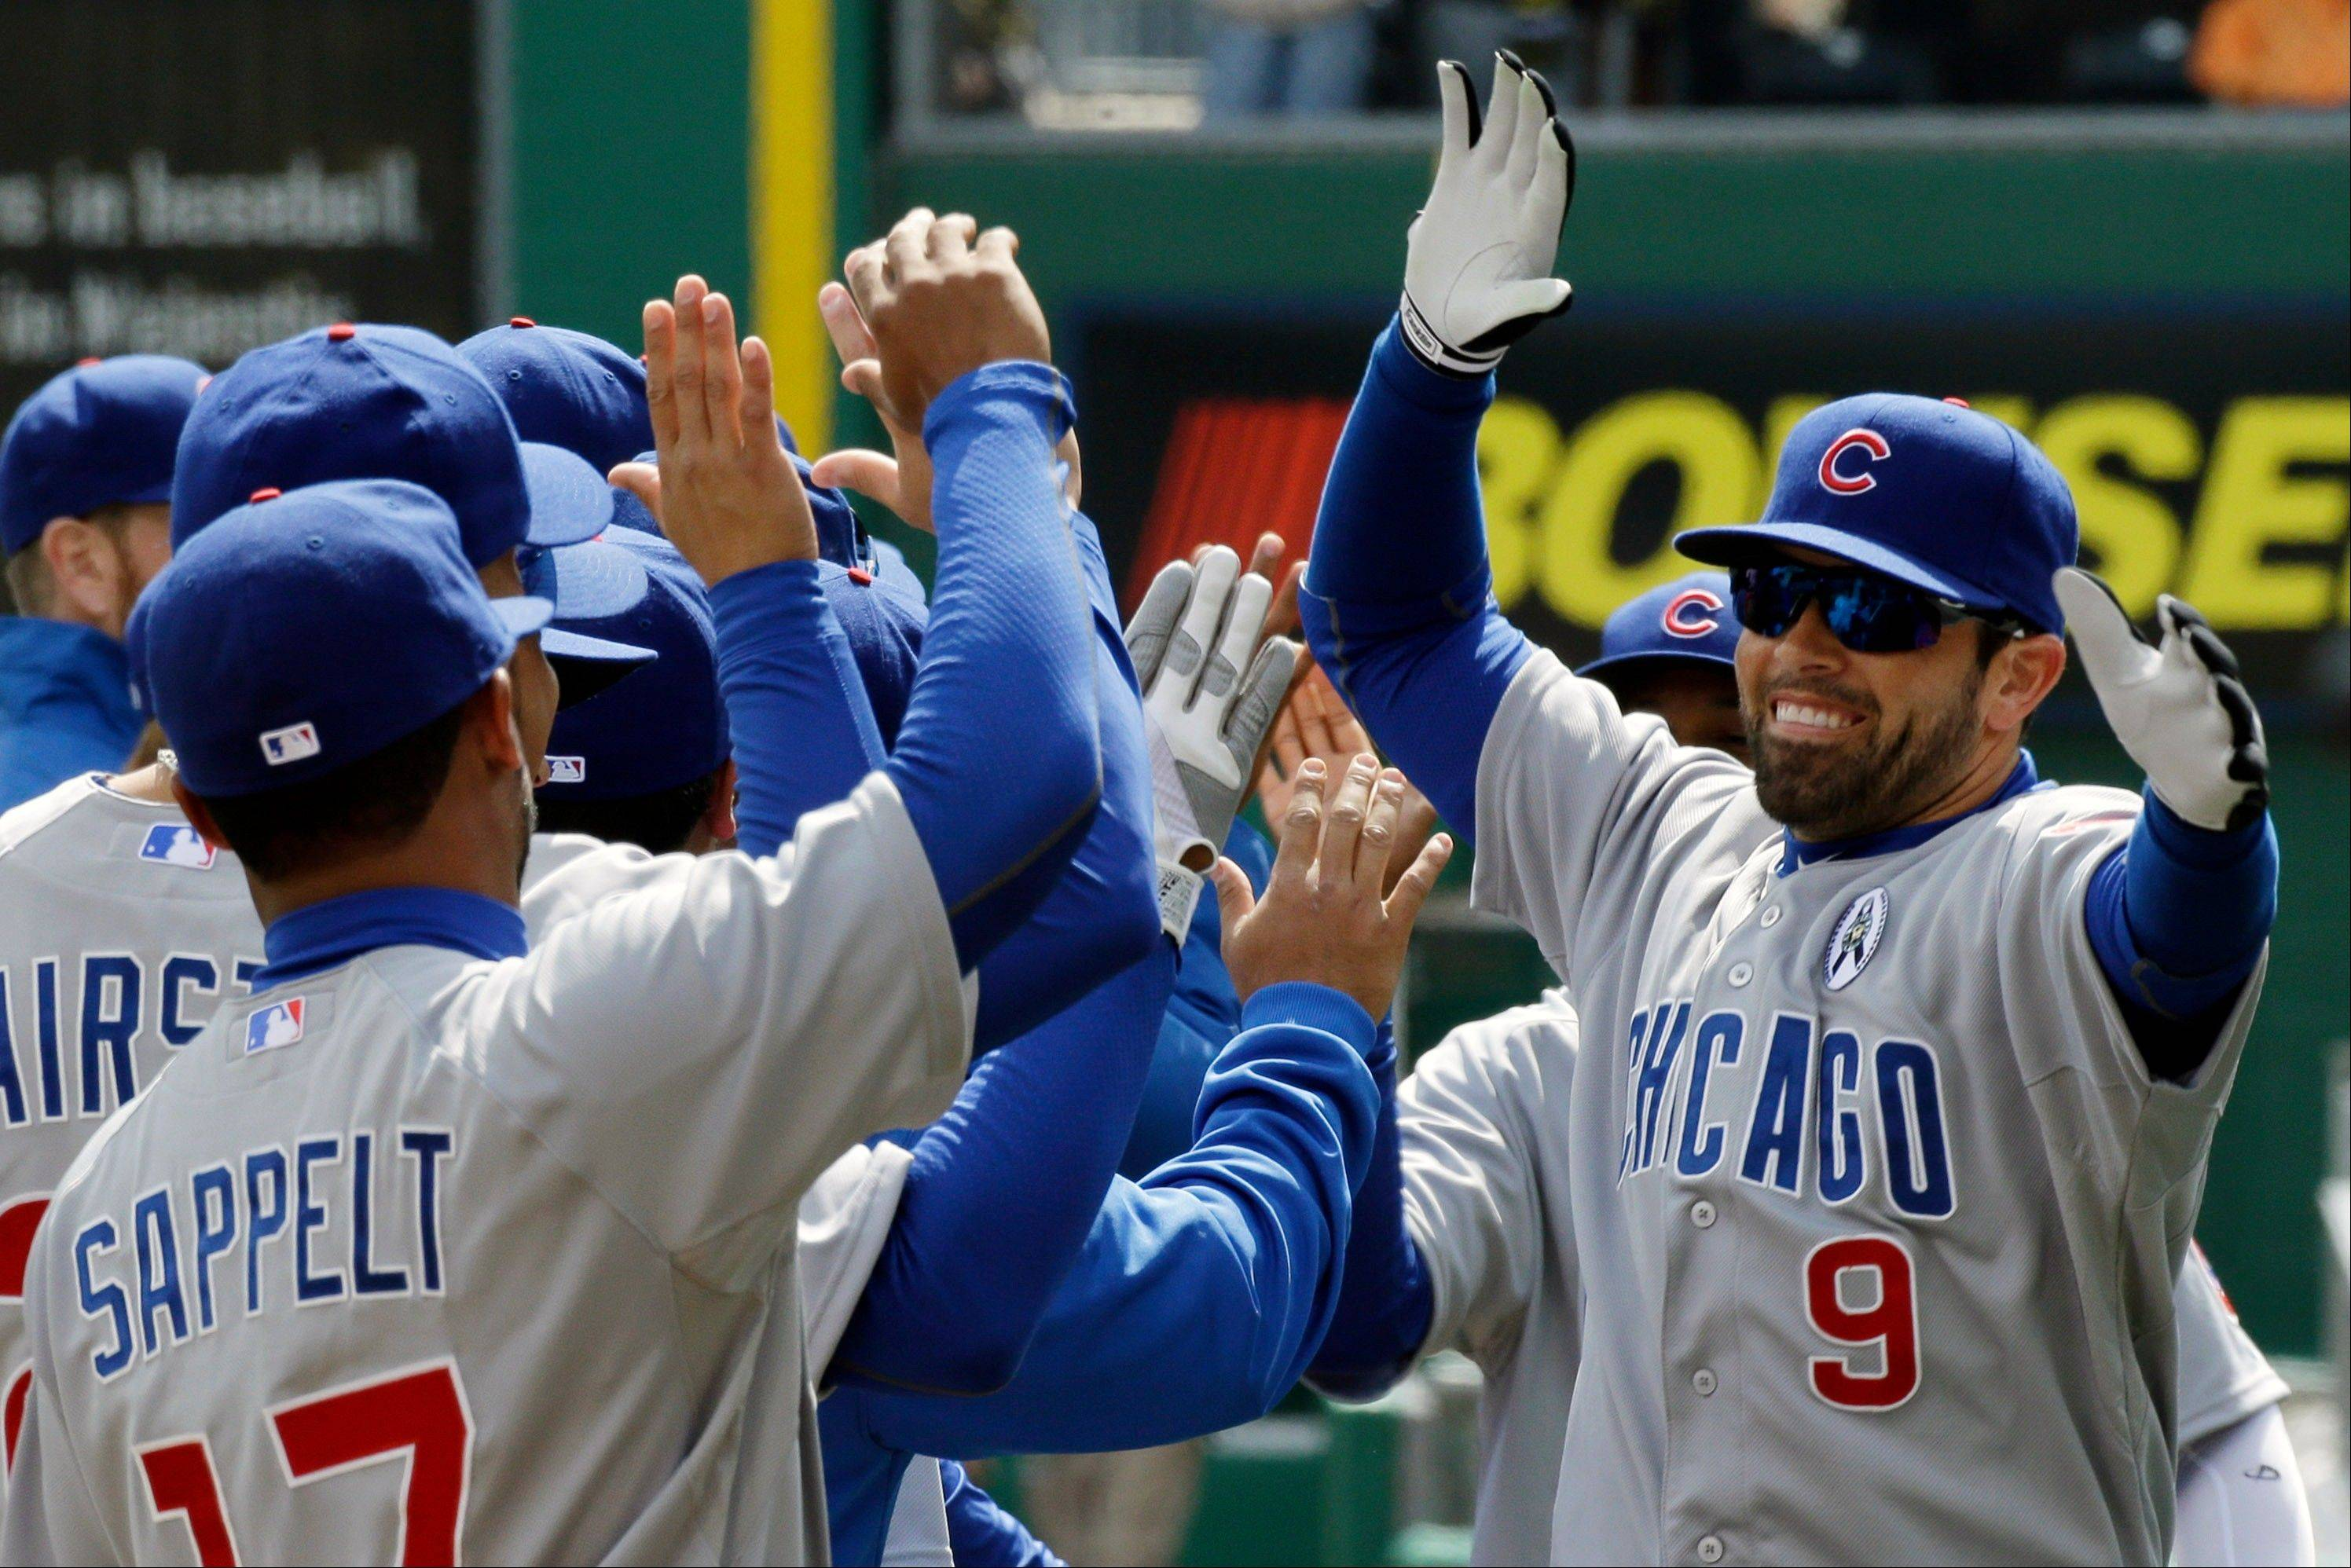 Chicago Cubs right fielder David DeJesus celebrates with teammates after being introduced before the game.